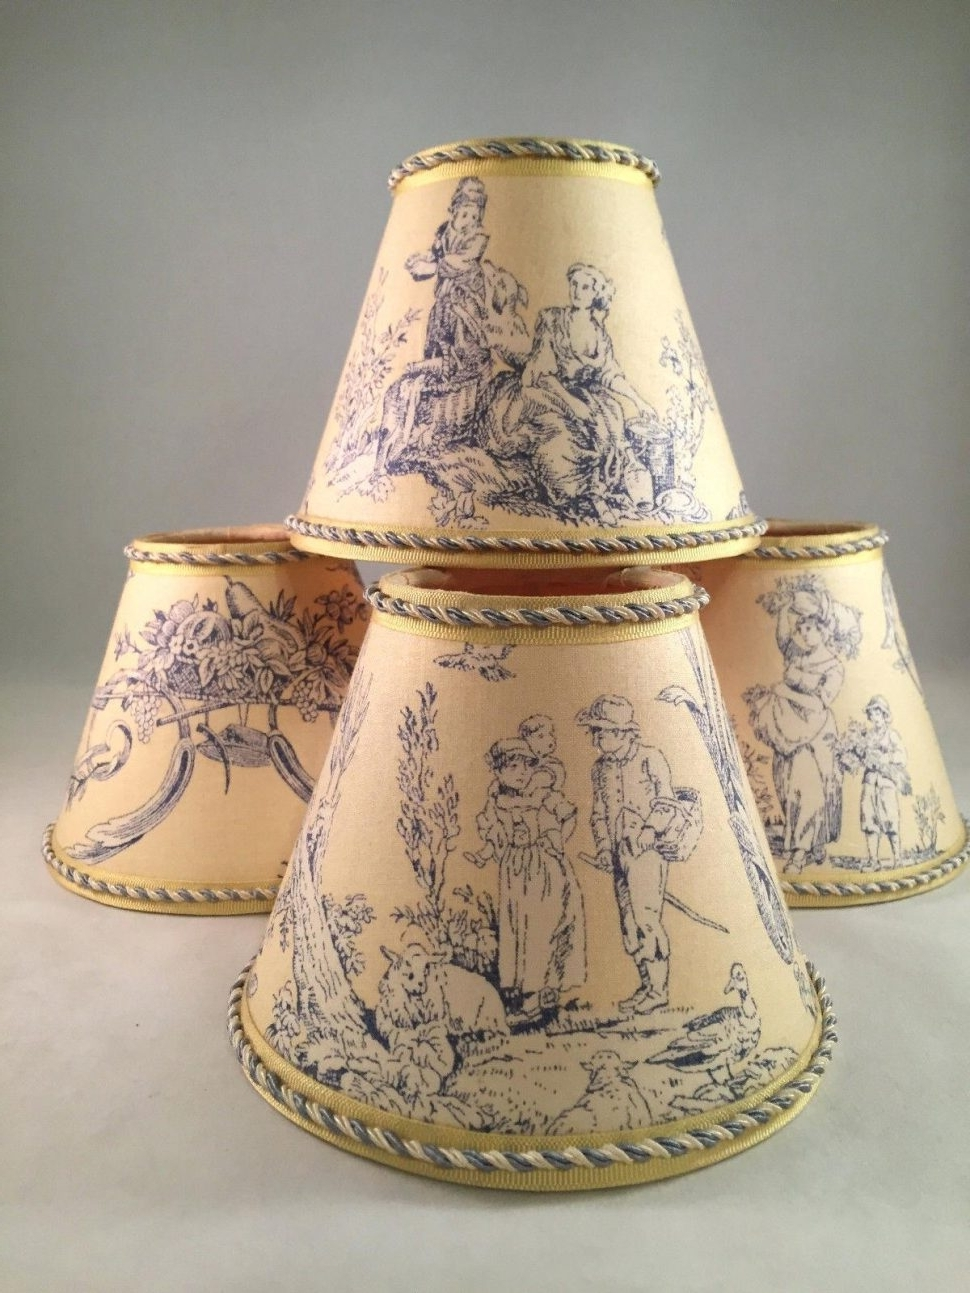 Clip On Chandelier Lamp Shades Intended For Current Red Toile Chandelier Lamp Shades – Chandelier Designs (View 4 of 15)